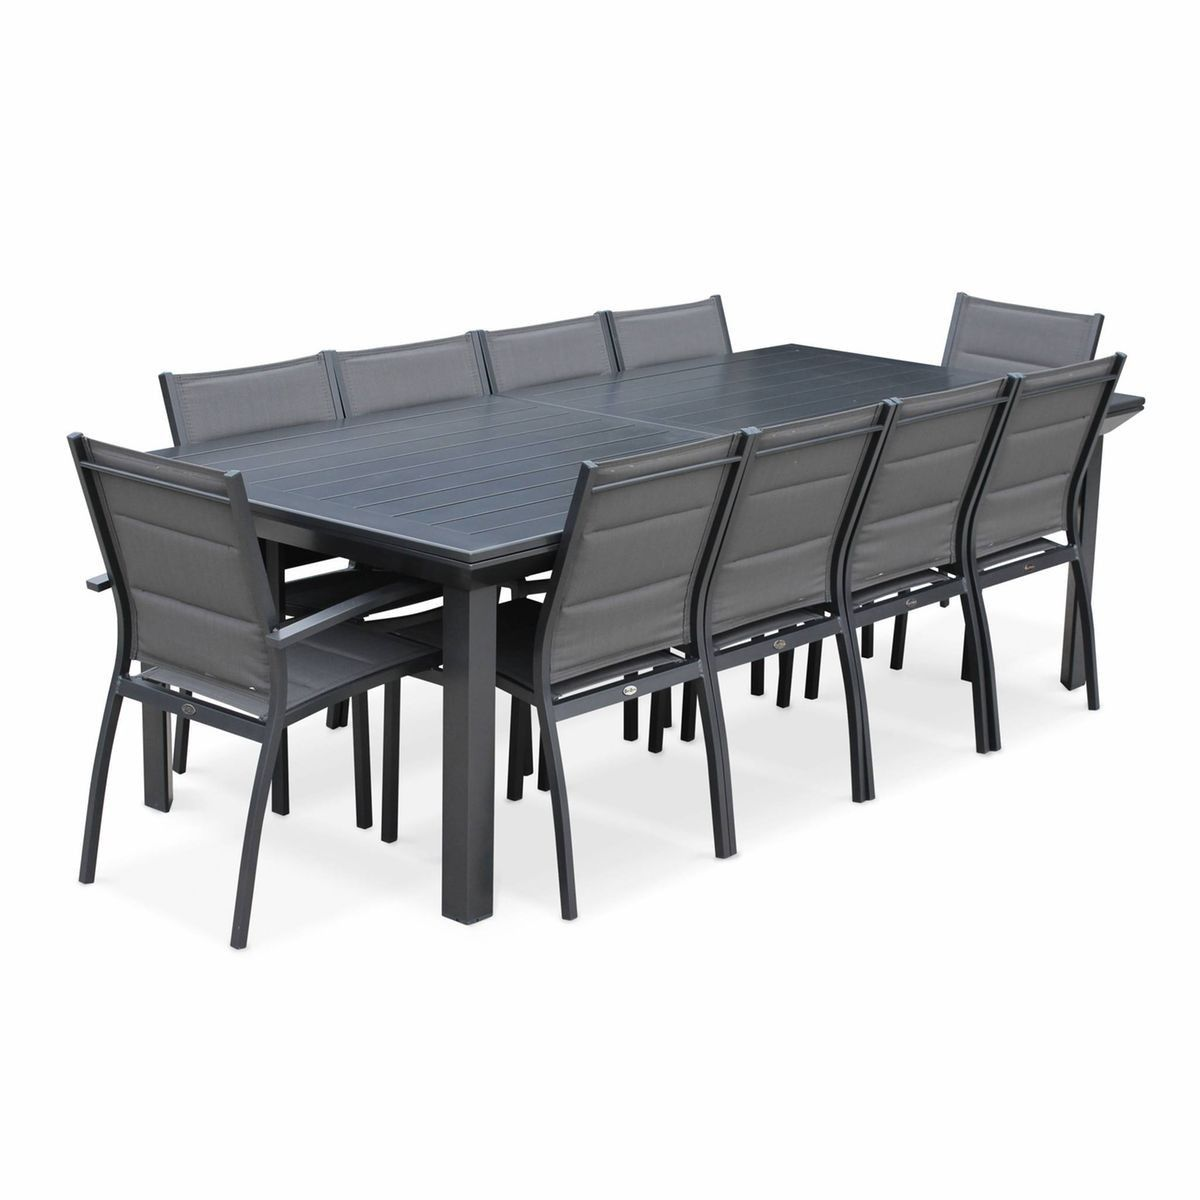 Salon de jardin table extensible - Odenton - Grande table en ...